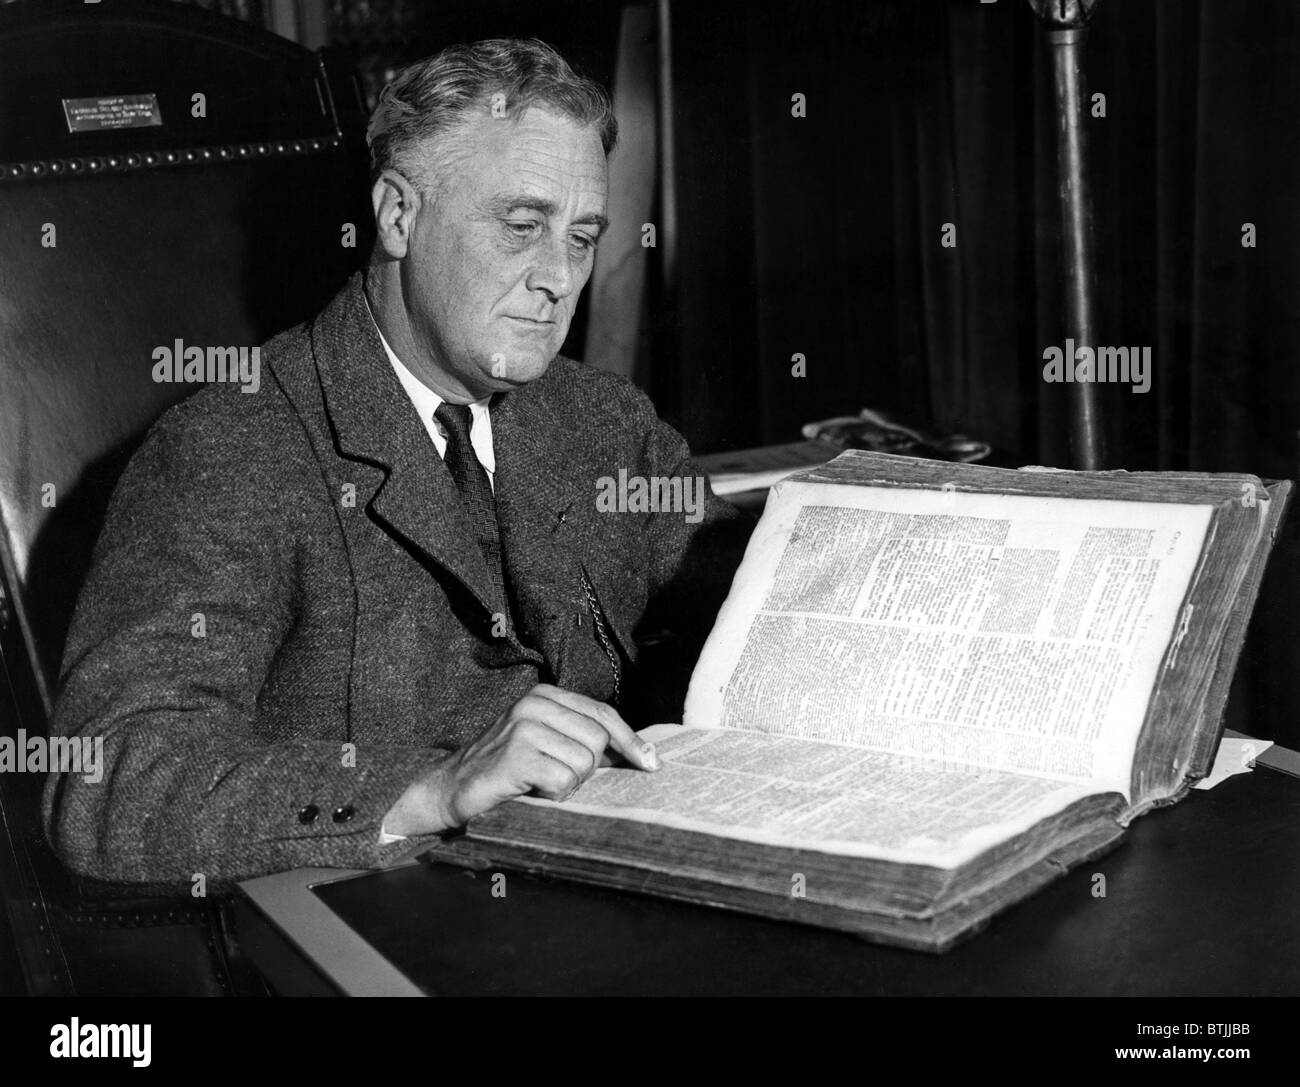 franklin d roosevelt biography essay Inevitable some historians, for example, argue that president franklin d  roosevelt  the essay concludes that the president's speech to congress   1982) jeffrey w coker, franklin d roosevelt: a biography (westport, ct:  greenwood.